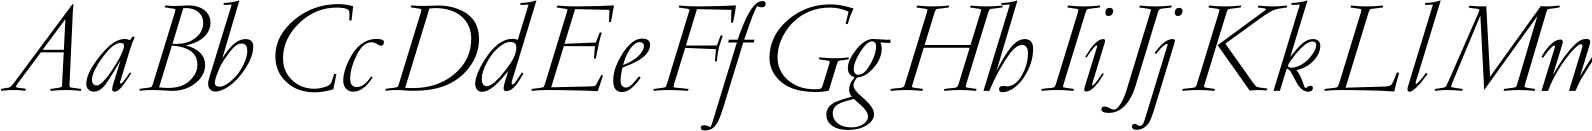 GaramondRR LightItalic